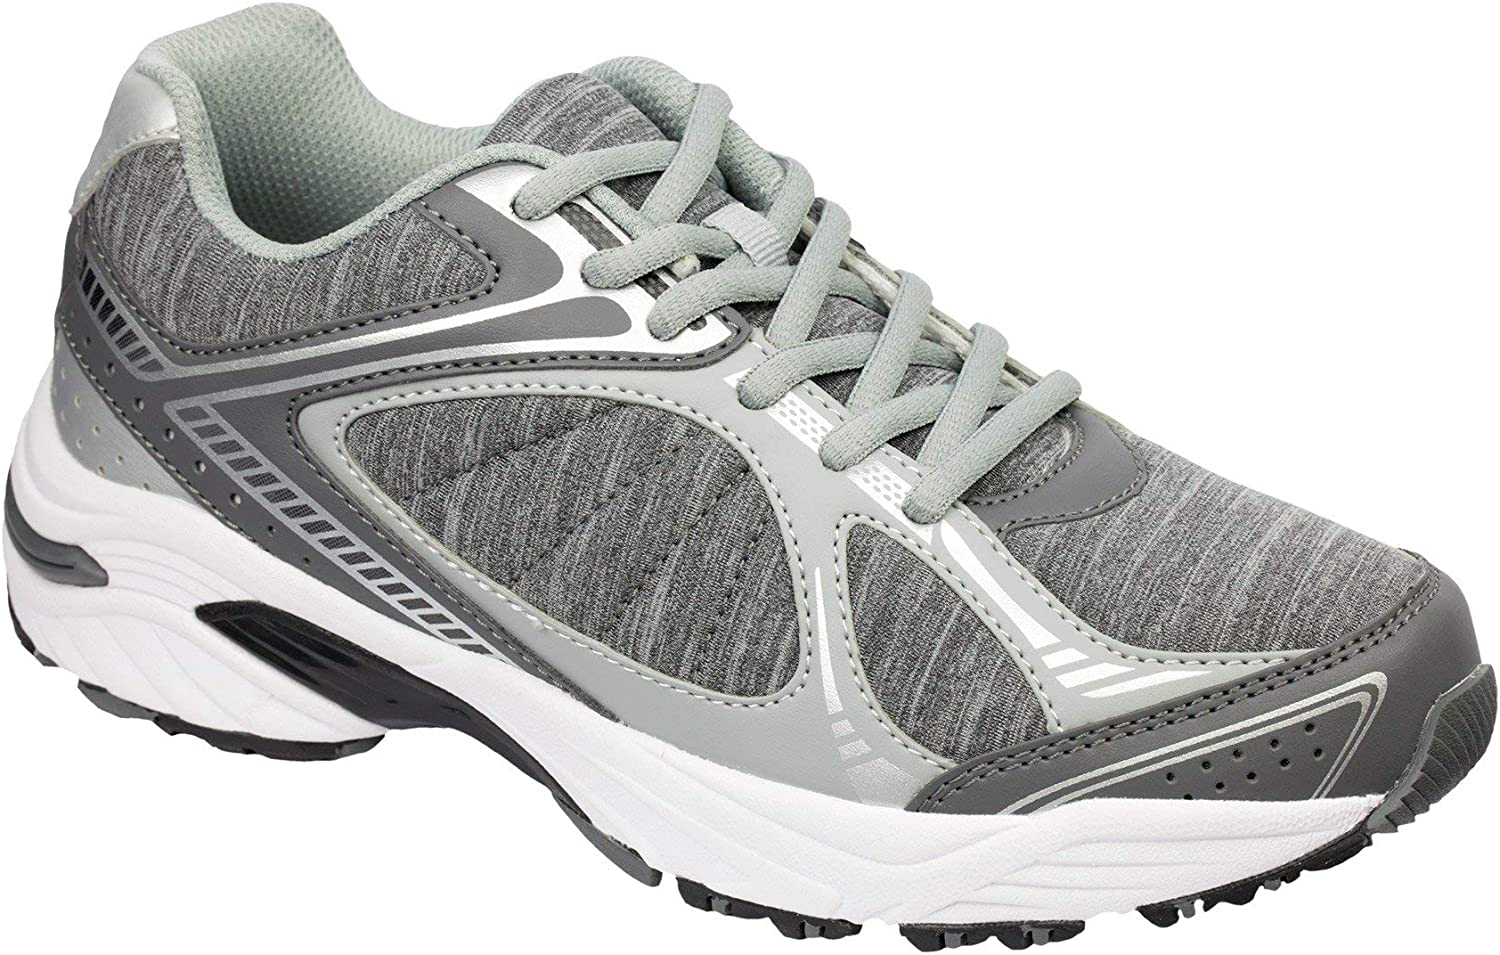 Scholl Deportivas New Sprinter Grigio 43: Amazon.es: Zapatos y ...